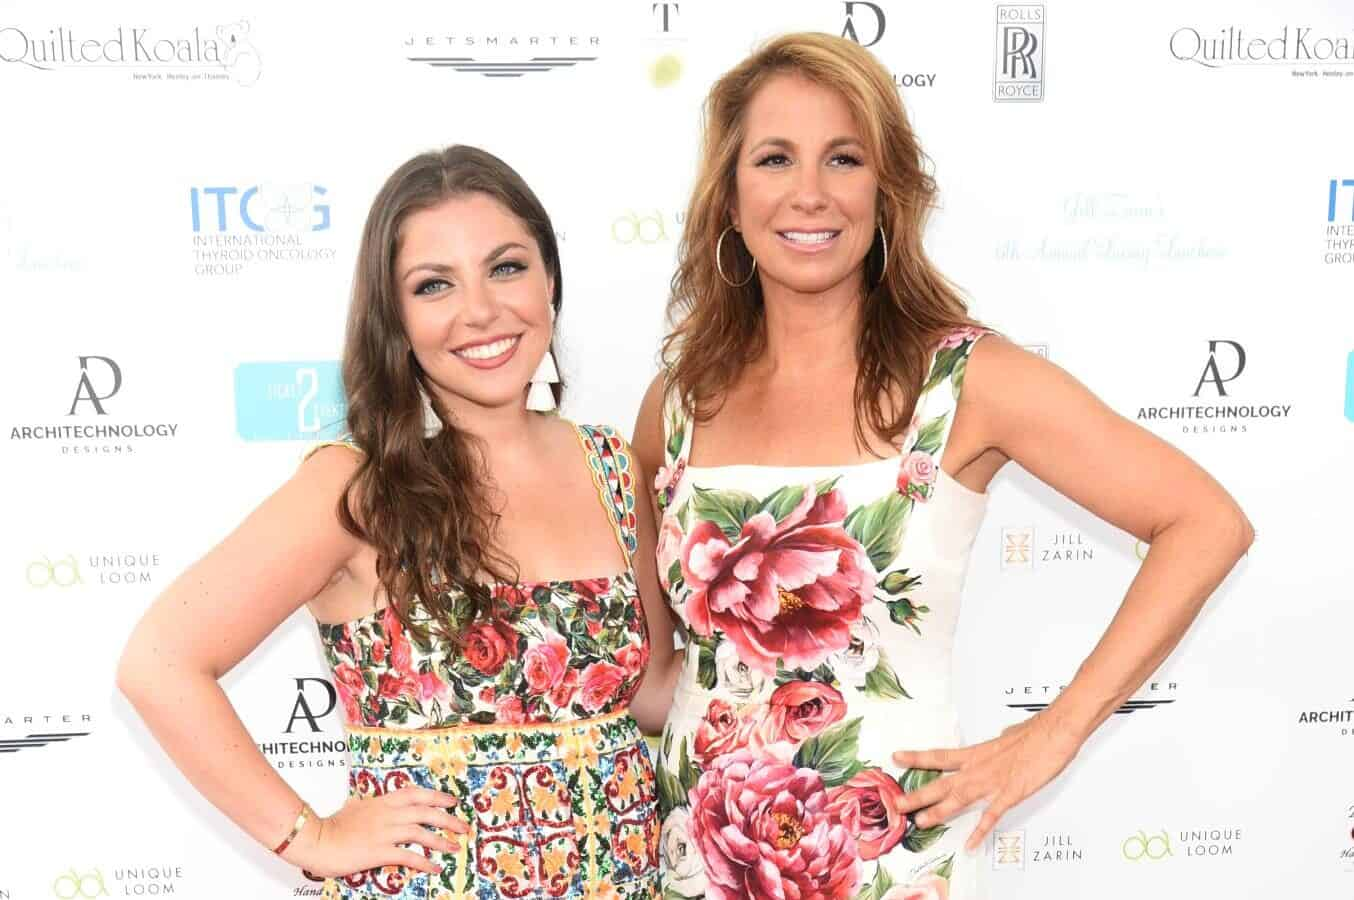 RHONY Alum Jill Zarin Reveals Paternity Bombshell About Daughter Ally Shapiro, Plus Ally Shares the 'Shocking' Way She Discovered the Truth